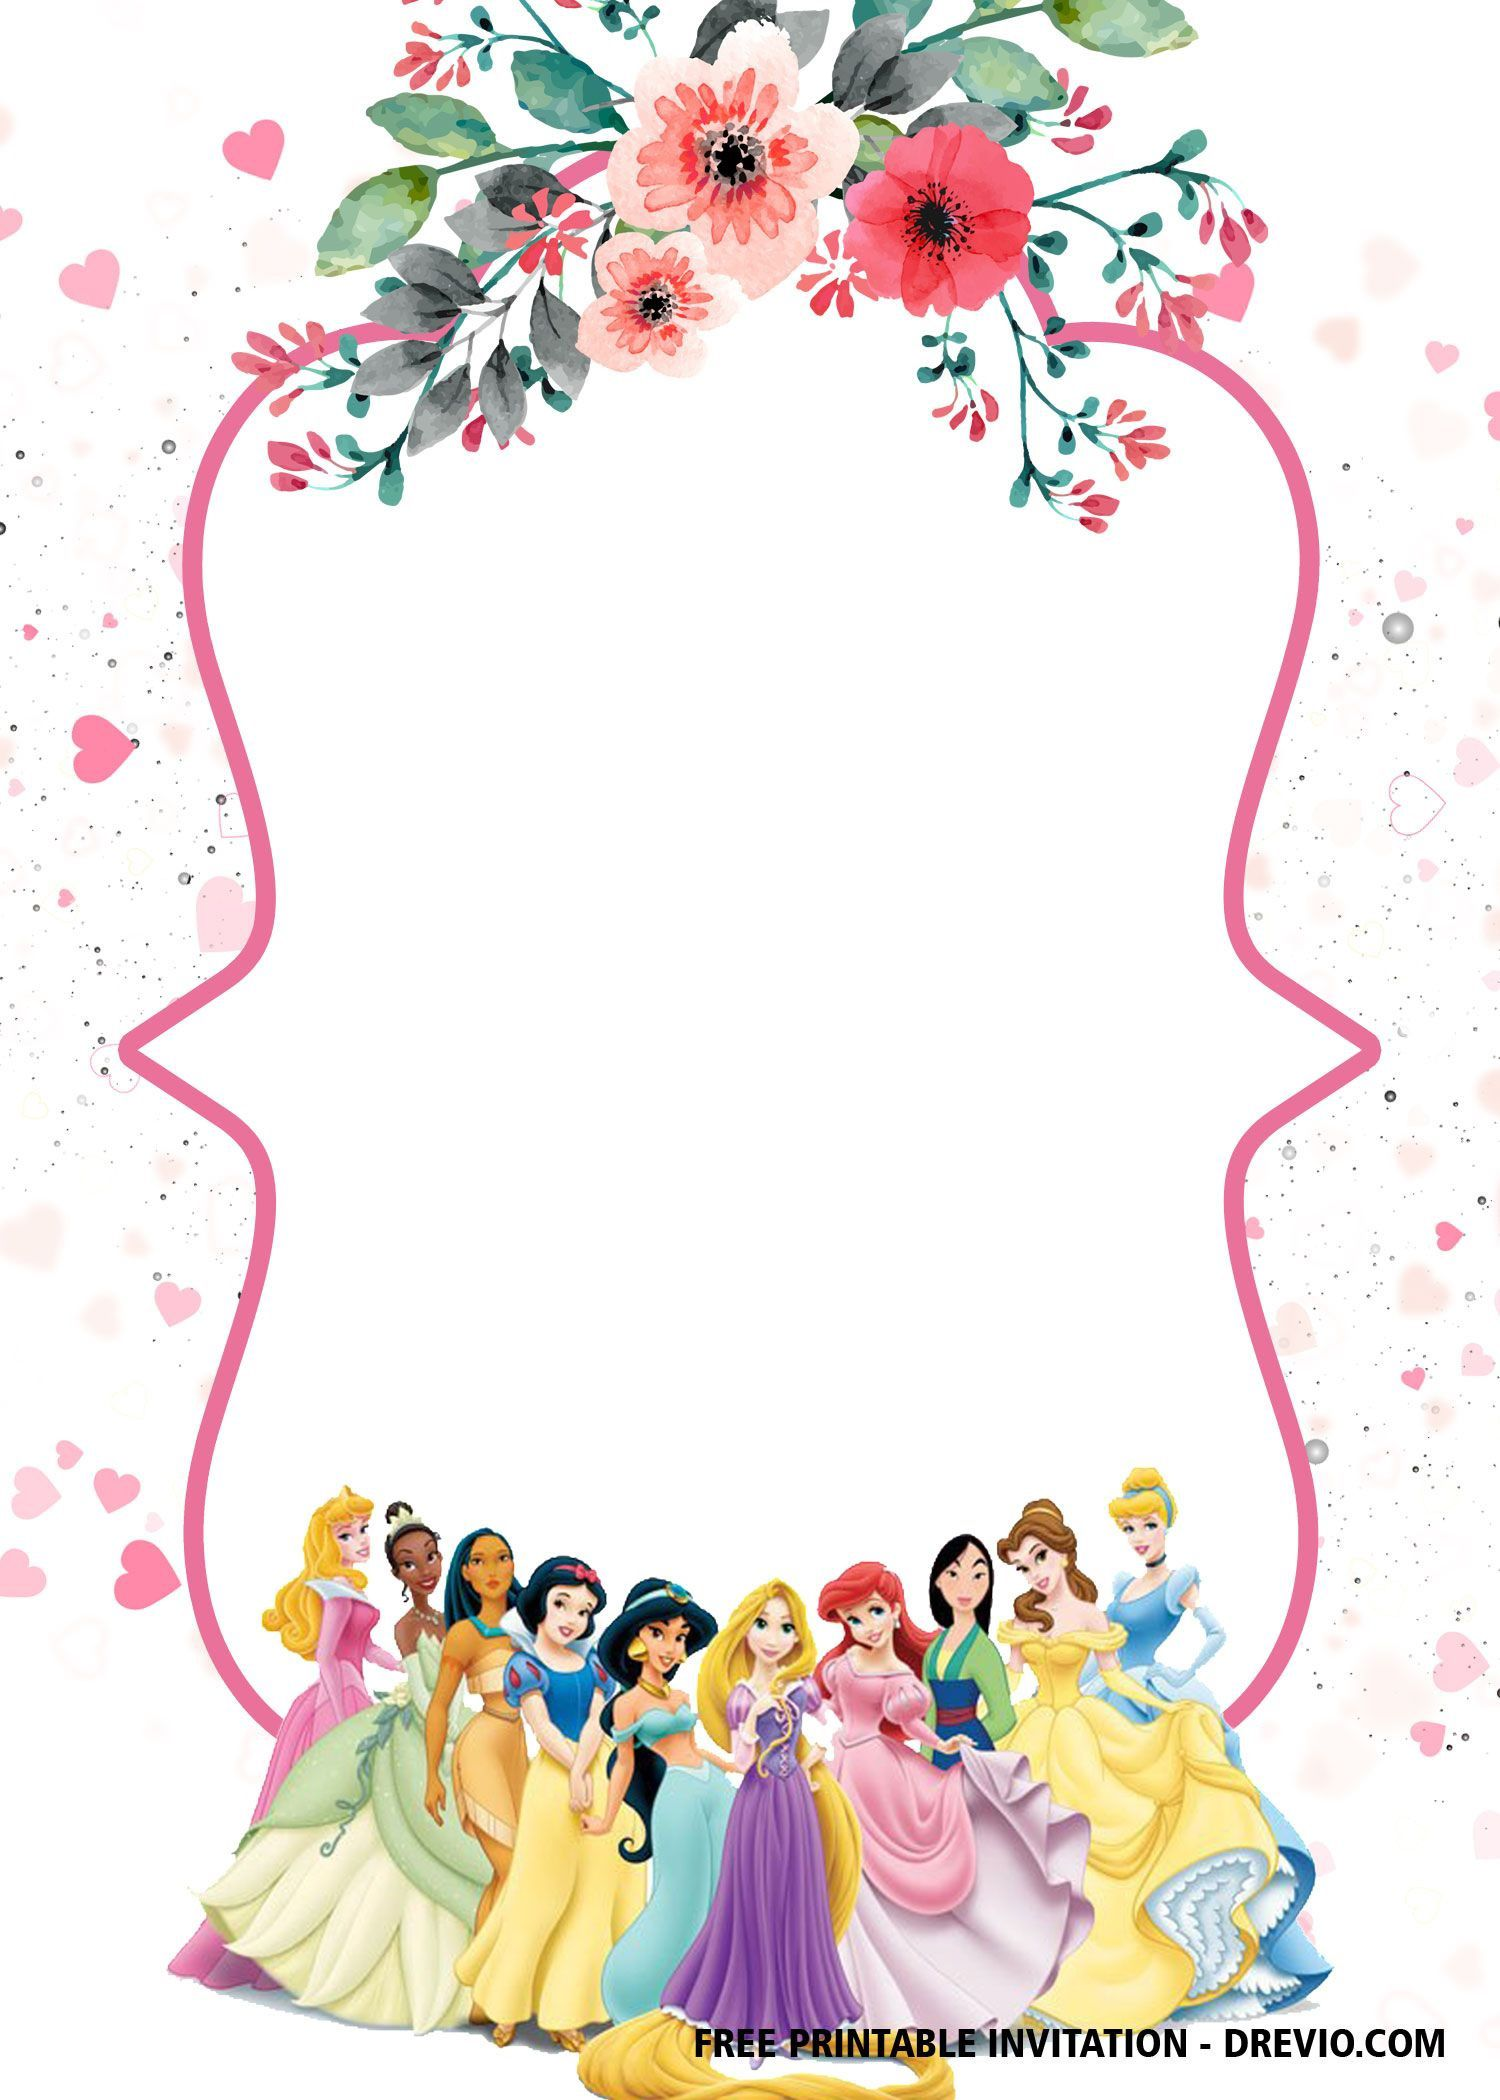 000 Top Disney Princes Invitation Template Highest Quality  Downloadable Party Free Printable BirthdayFull